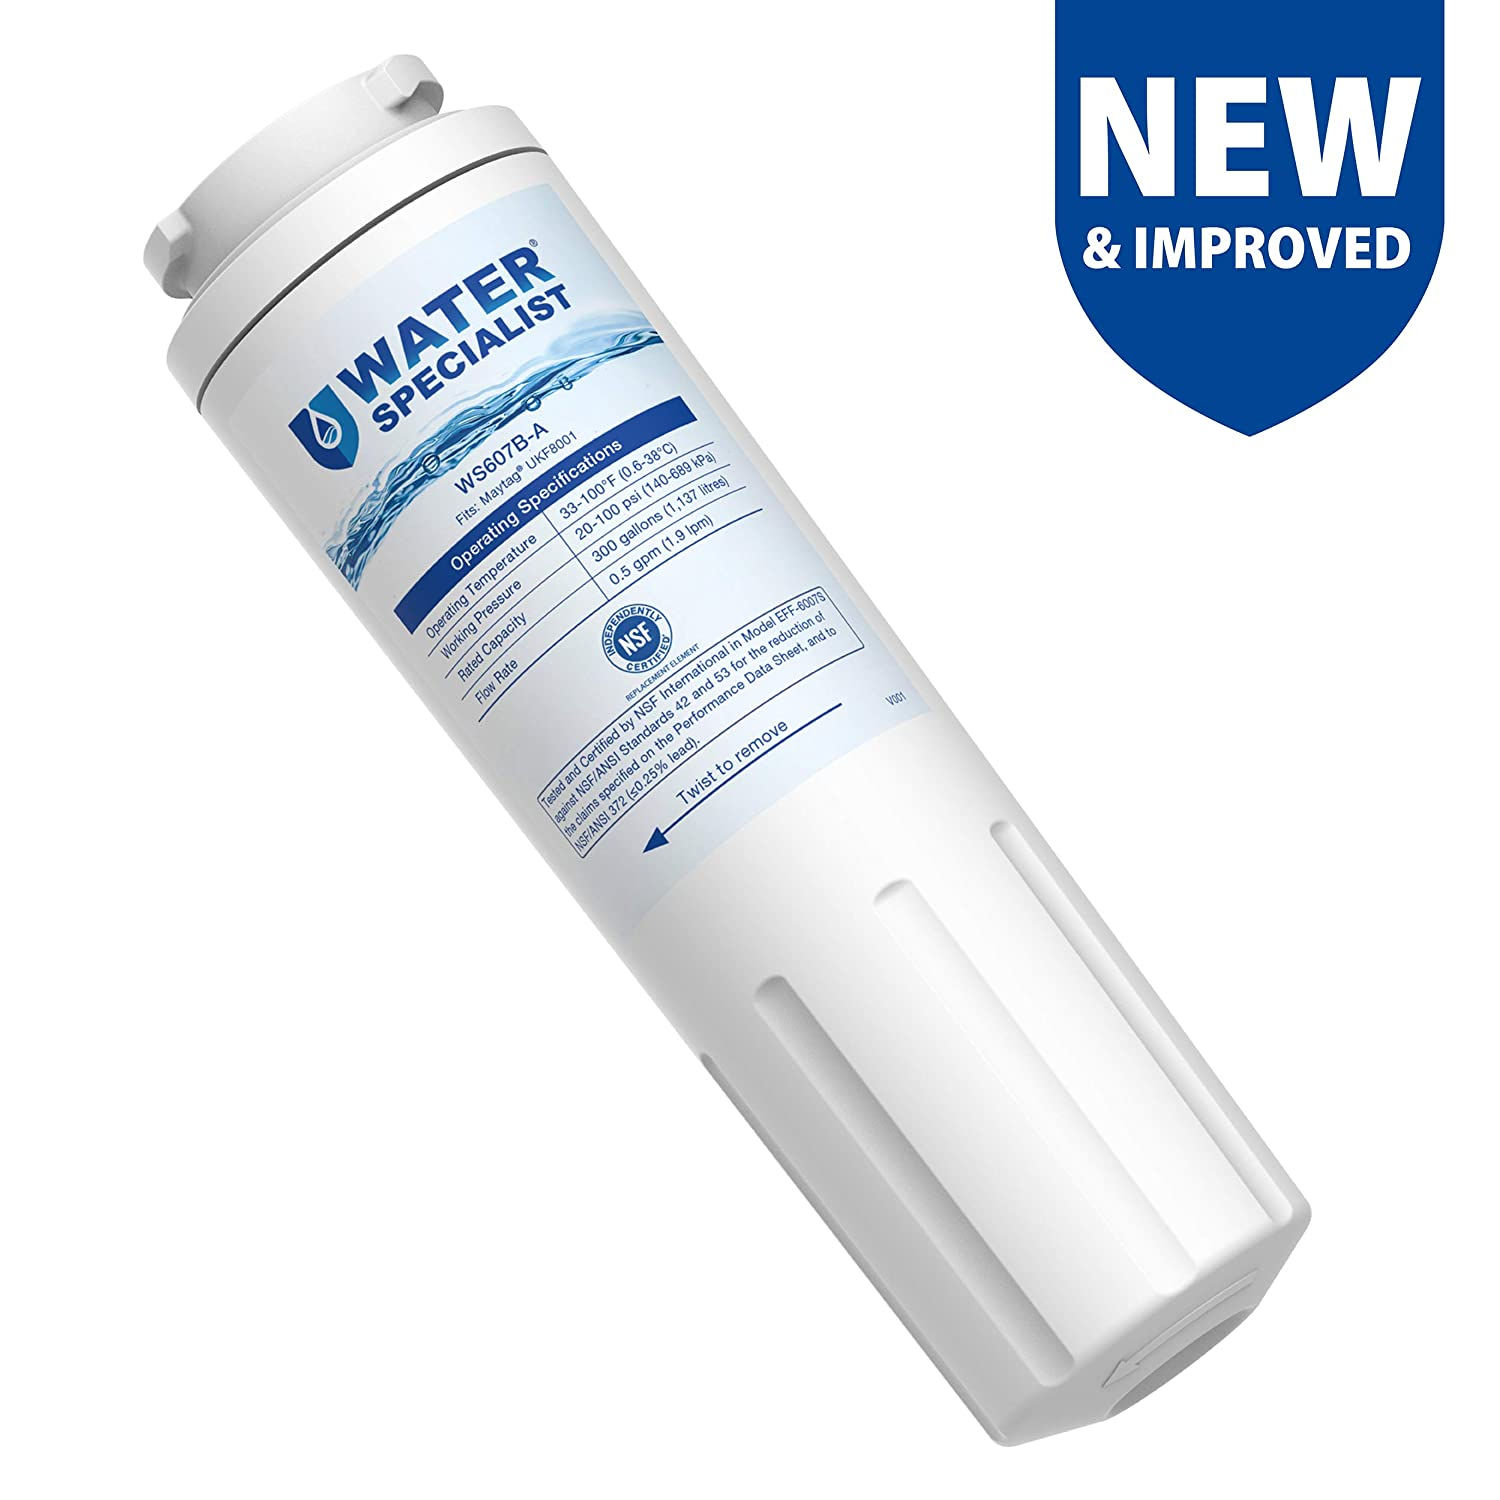 Jenn-Air PUR UKF8001AXX-750 UKF8001AXX Pack of 3 Waterspecialist UKF8001 Refrigerator Water Filter Filter 4 WS607B-3 4396395 UKF8001AXX-200 Replacement for Maytag